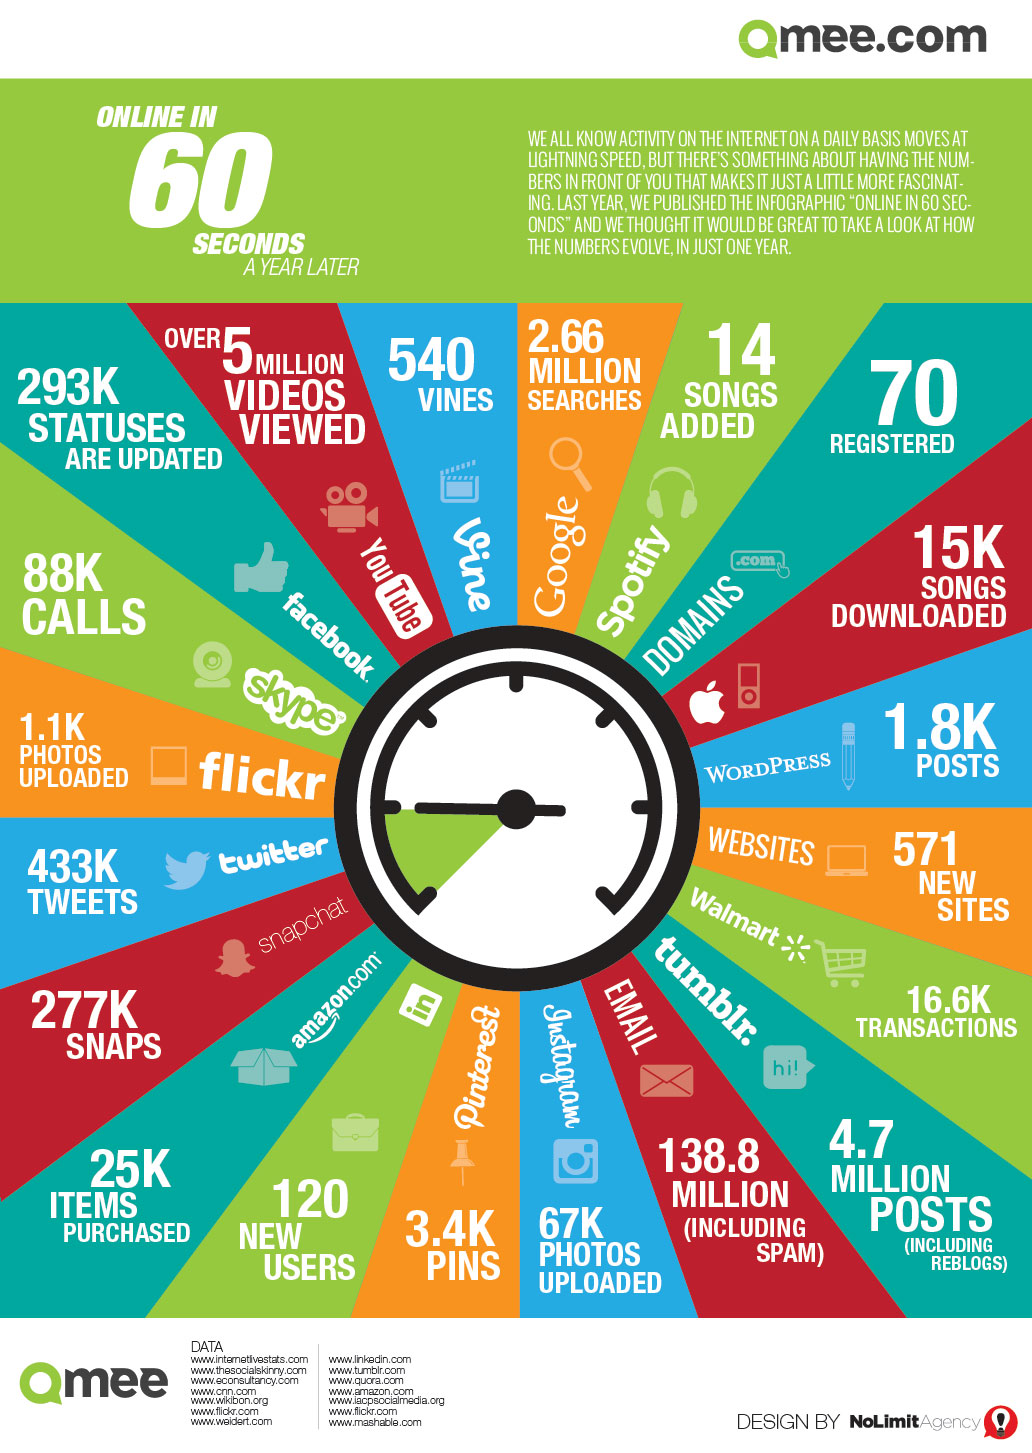 Zooma Infographic Online in 60 seconds